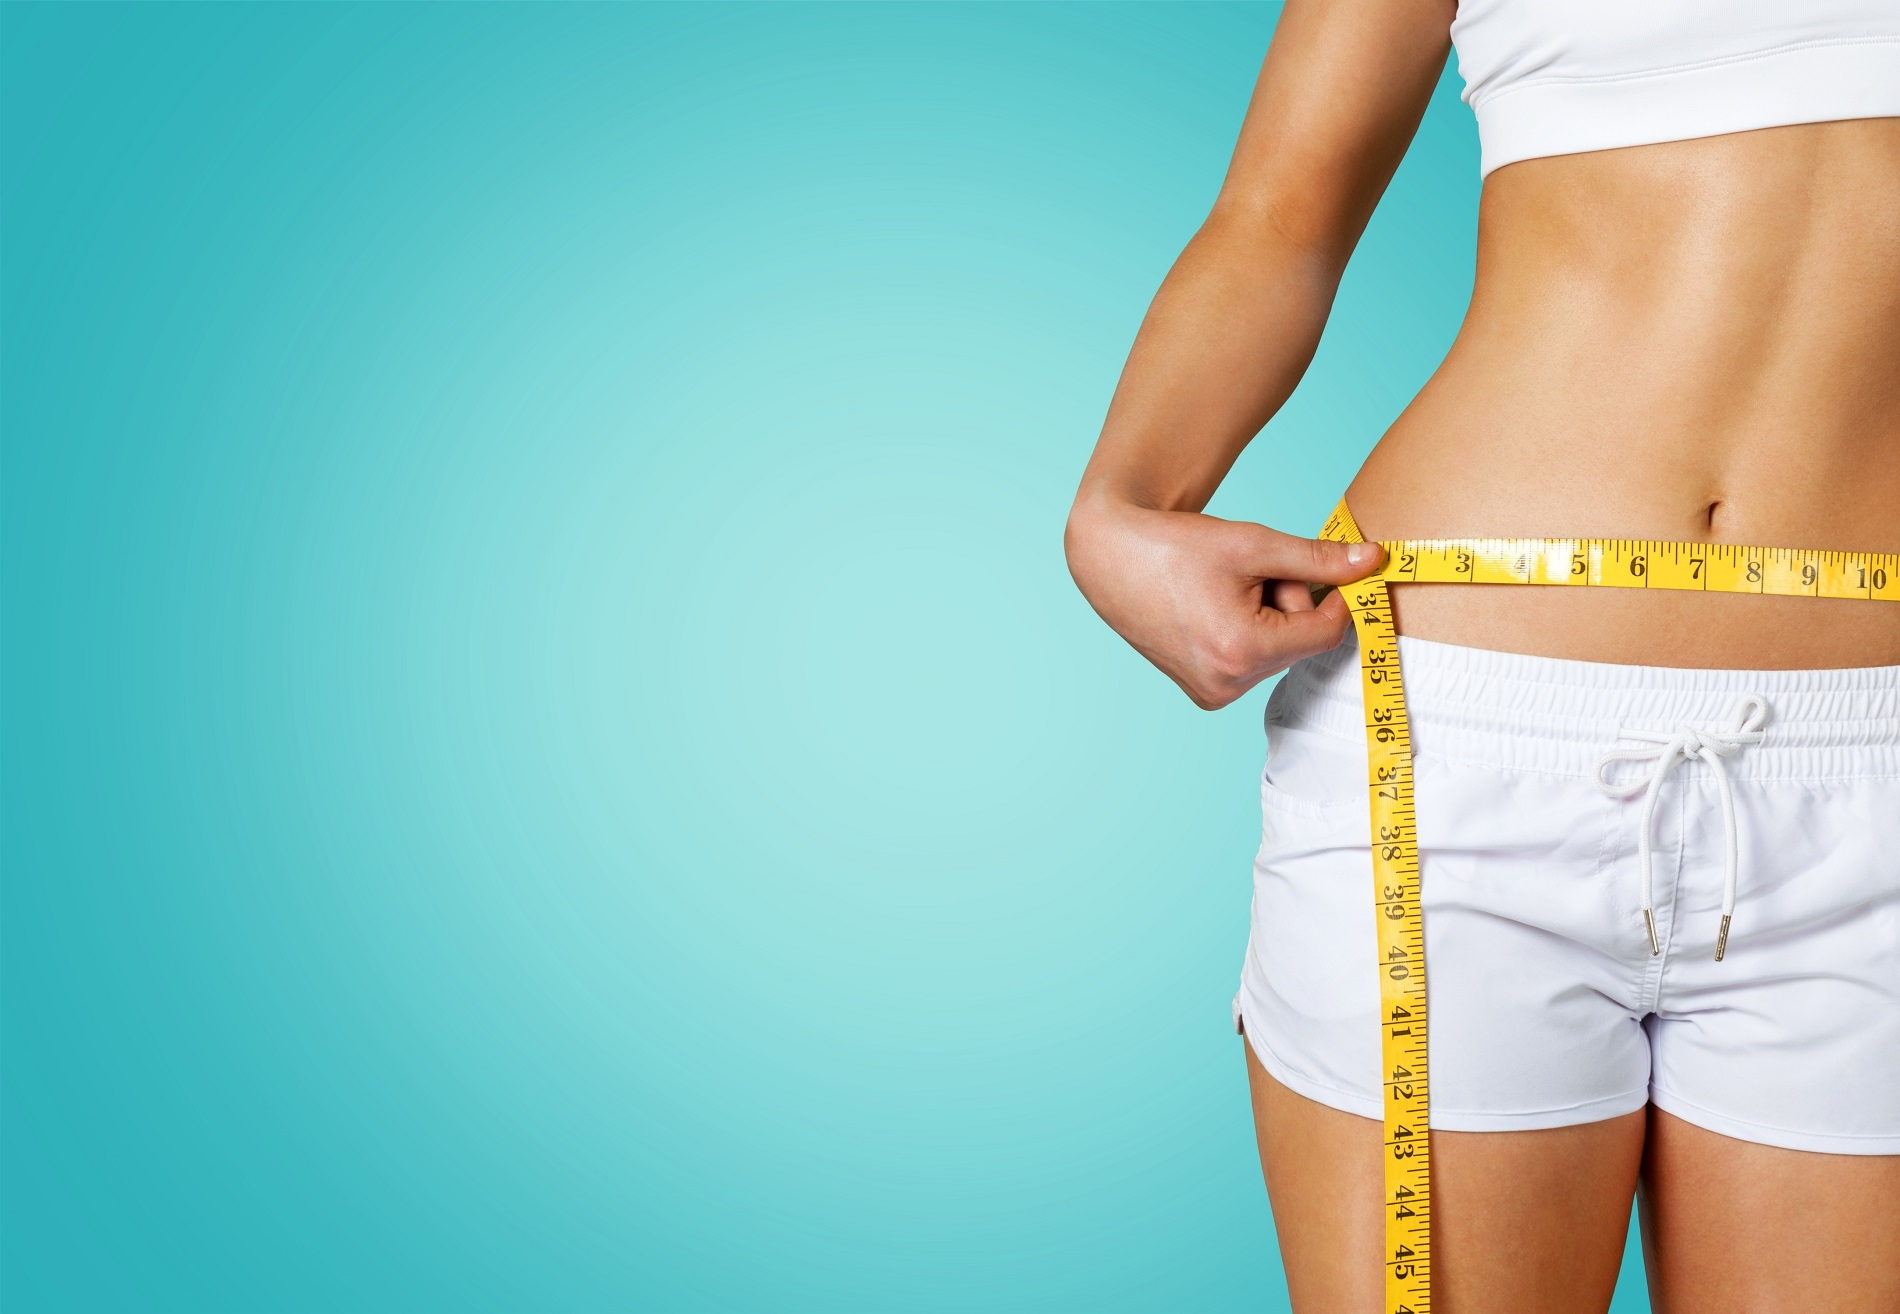 Slim young woman measuring her thin waist